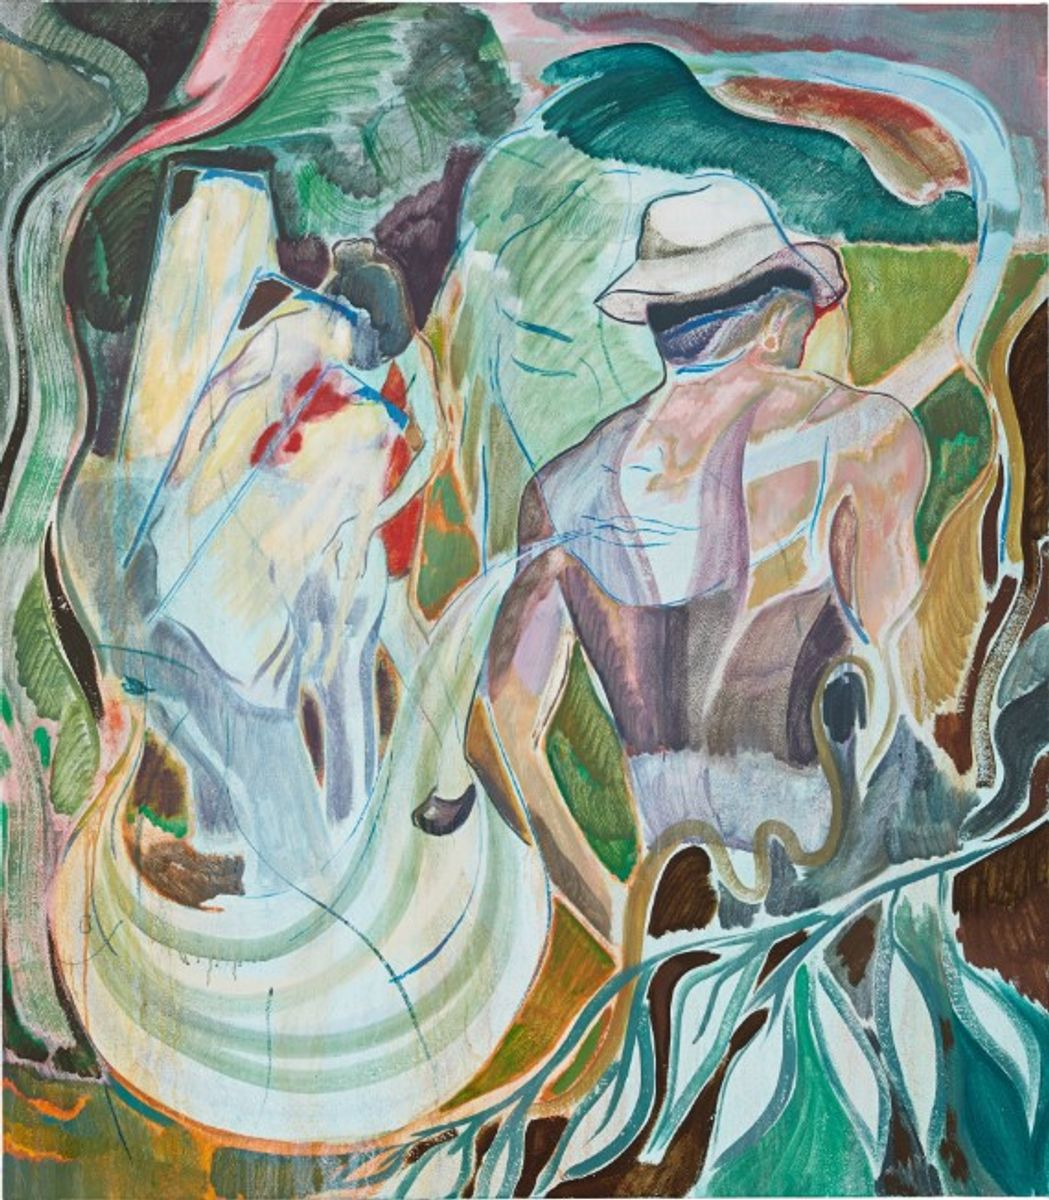 Auction Blotter: Michael Armitage's Big Debut, Tschabalala Self Sees 3,400 Percent Return, & Shara Hughes Goes Huge in New York's Day Sales